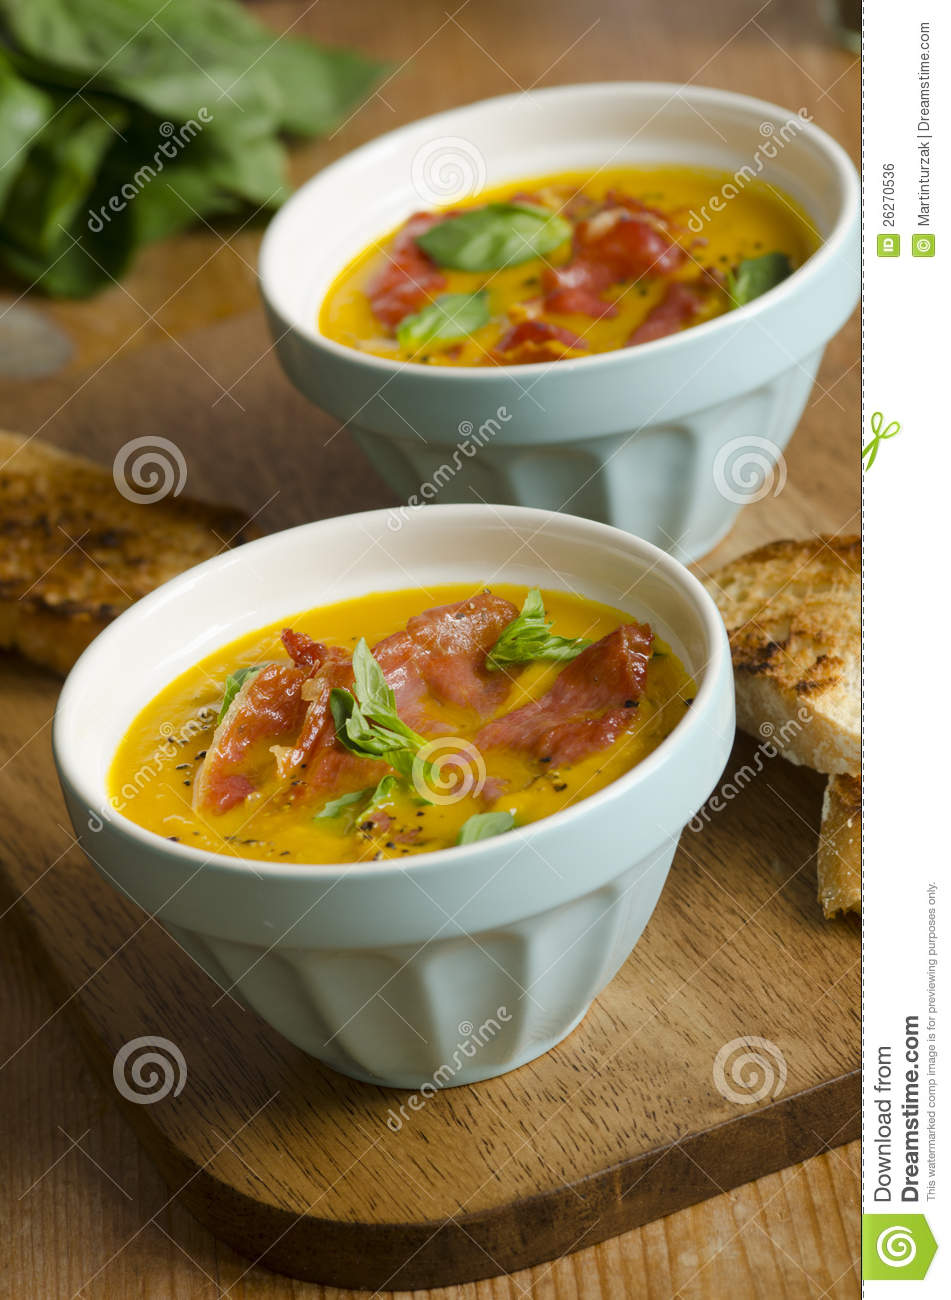 Melon Soup Royalty Free Stock Image - Image: 26270536